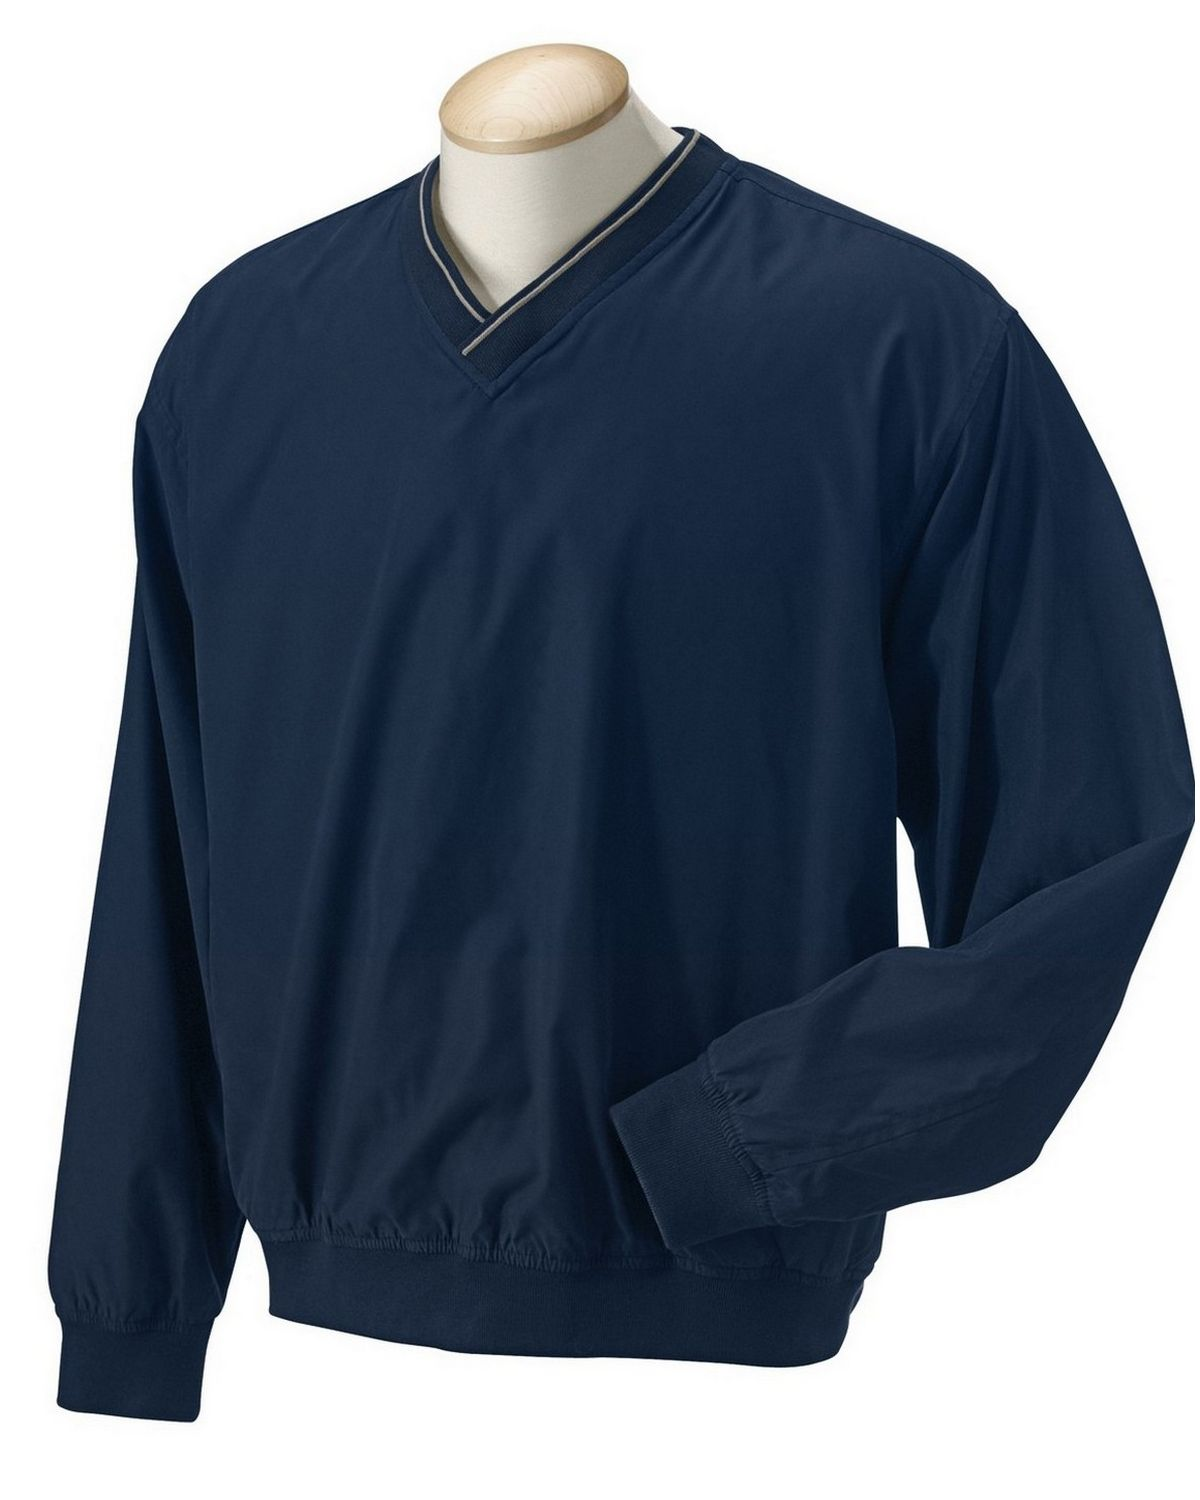 Devon & Jones D950 Mens Windcheater Windshirt - Stone/Navy - M D950